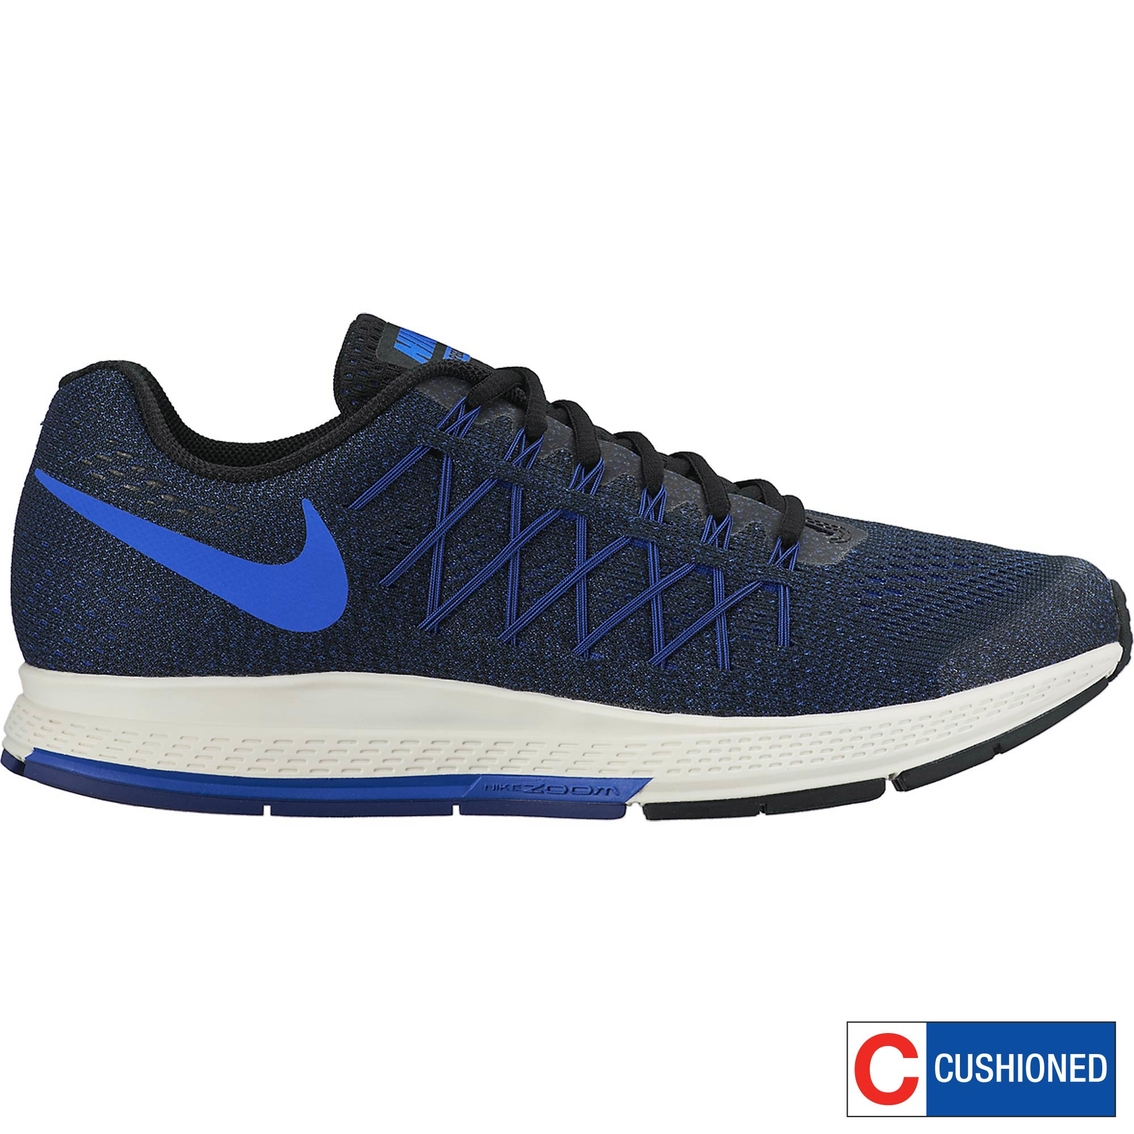 9a11a2c08be2 Nike Men s Air Zoom Pegasus 32 Running Shoes